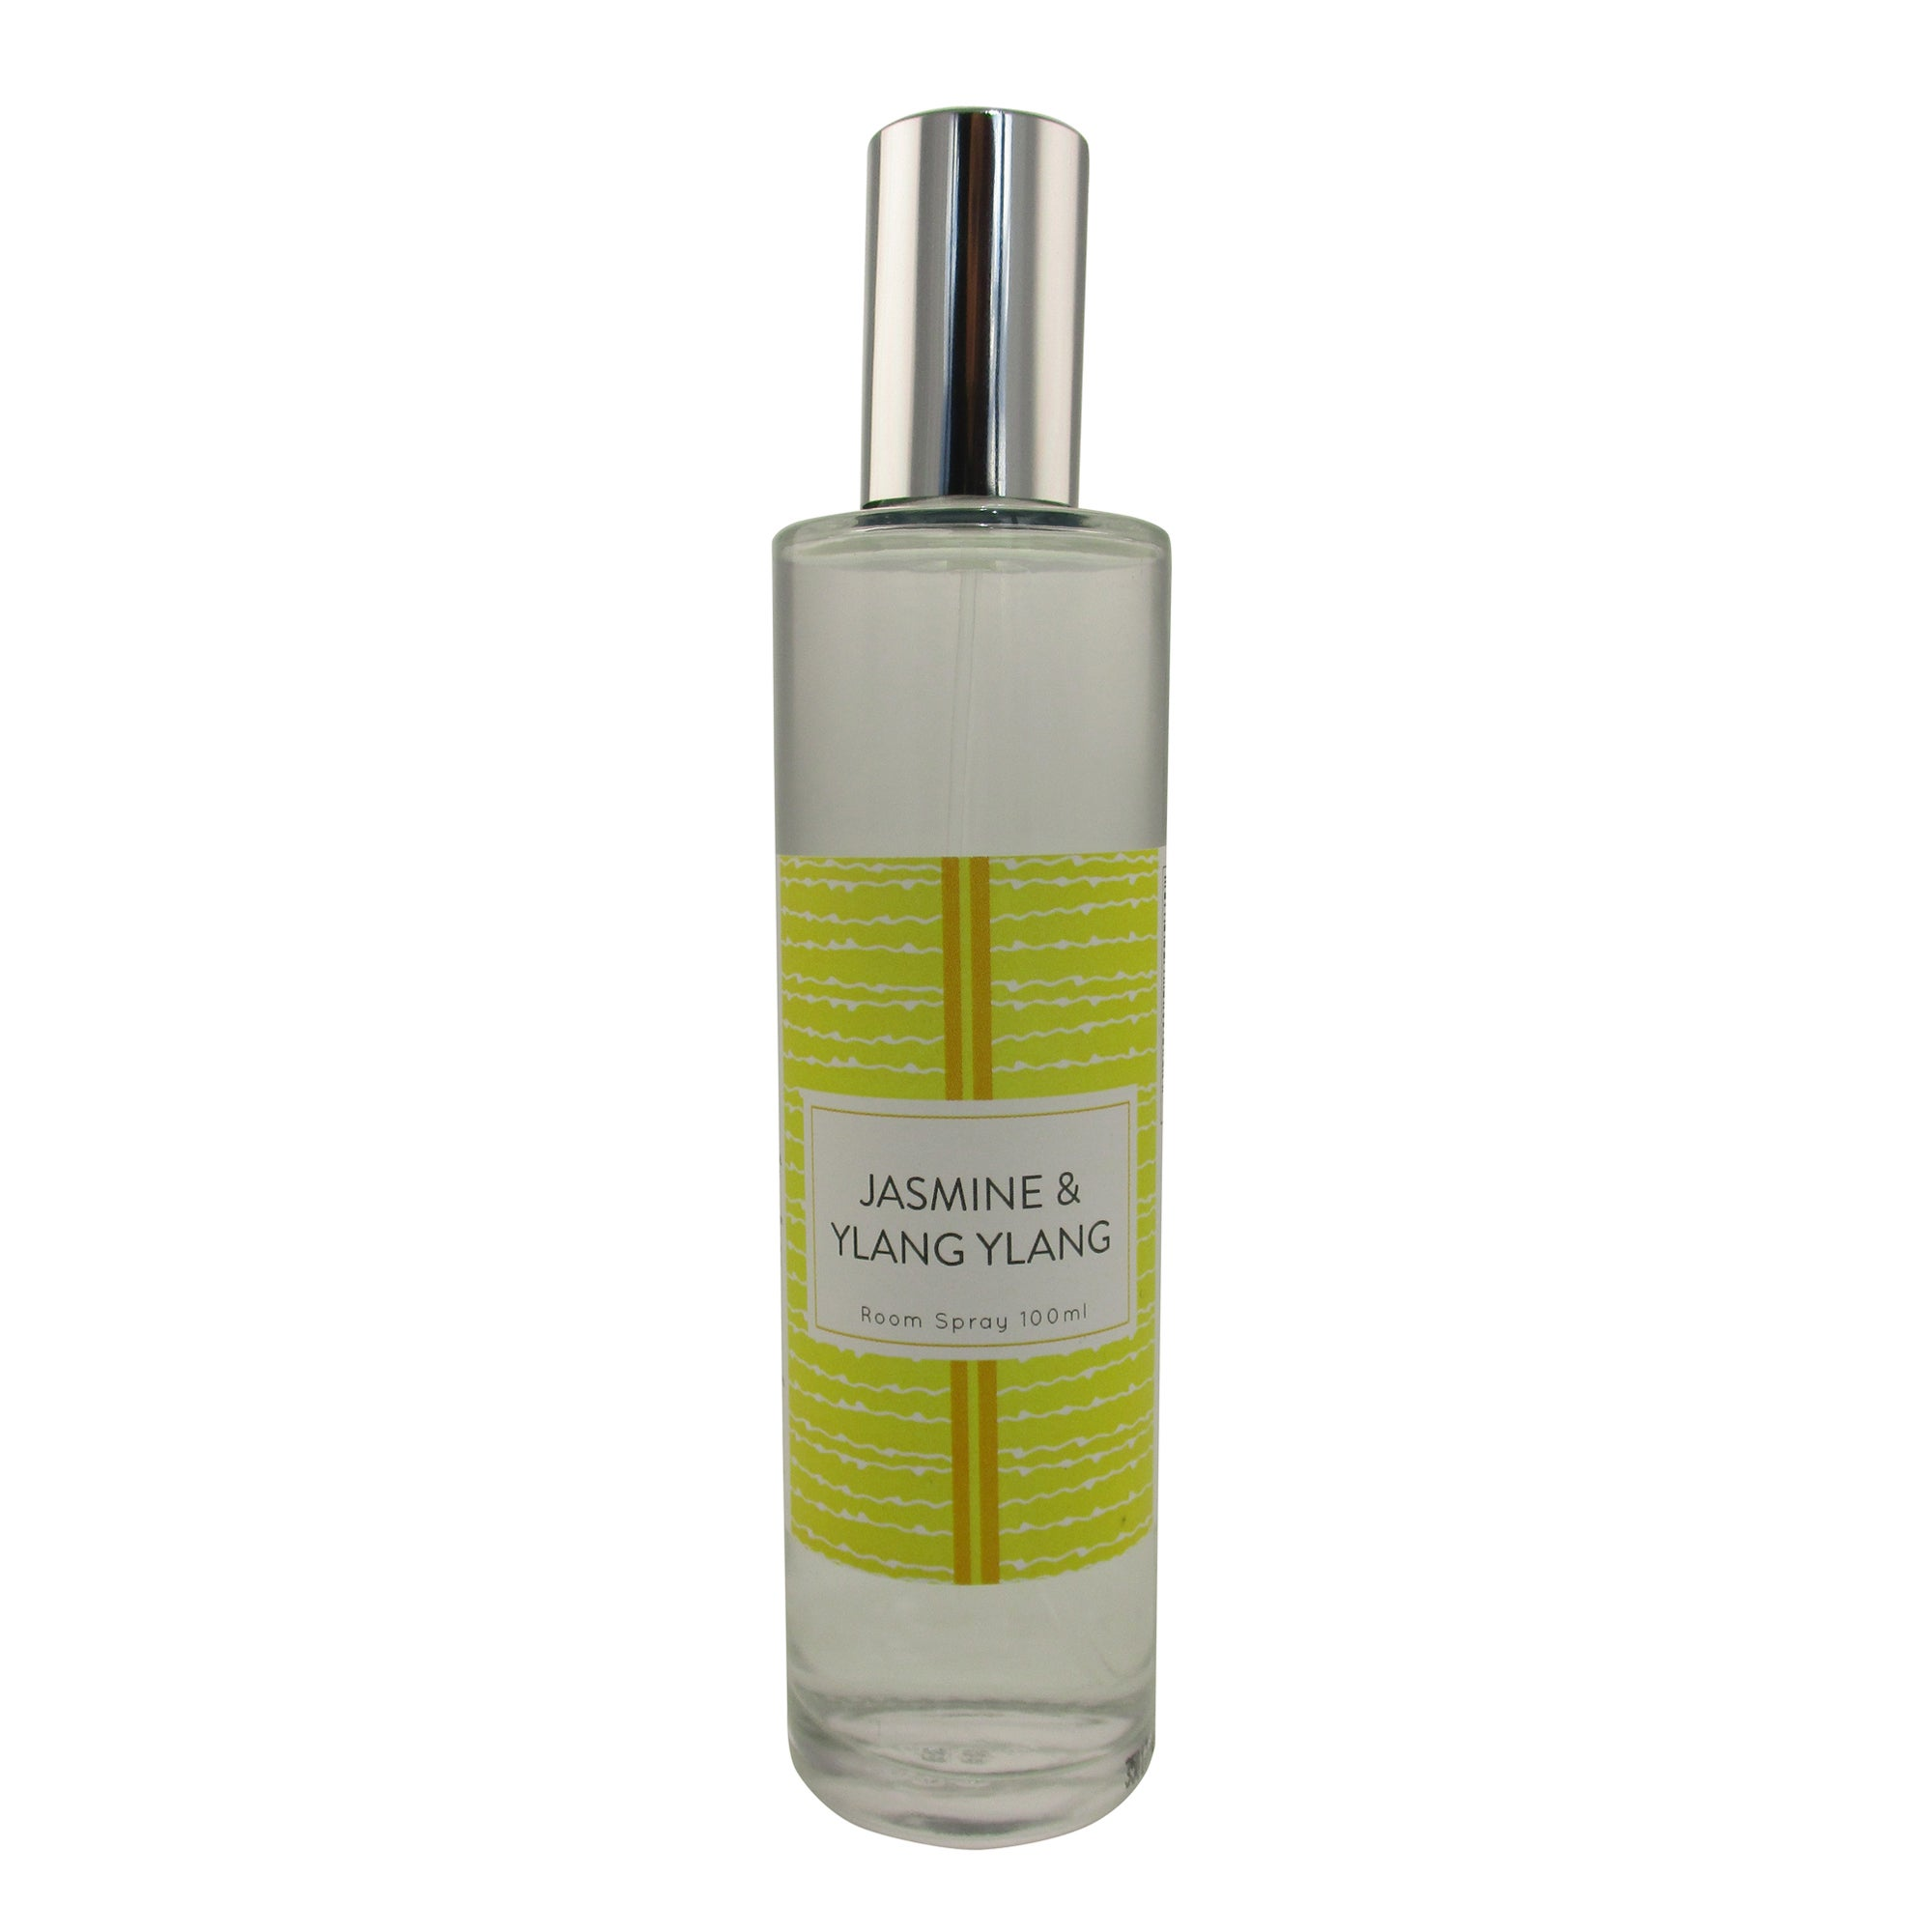 Home Fragrance Jasmine and Ylang Ylang 100ml Room Spray